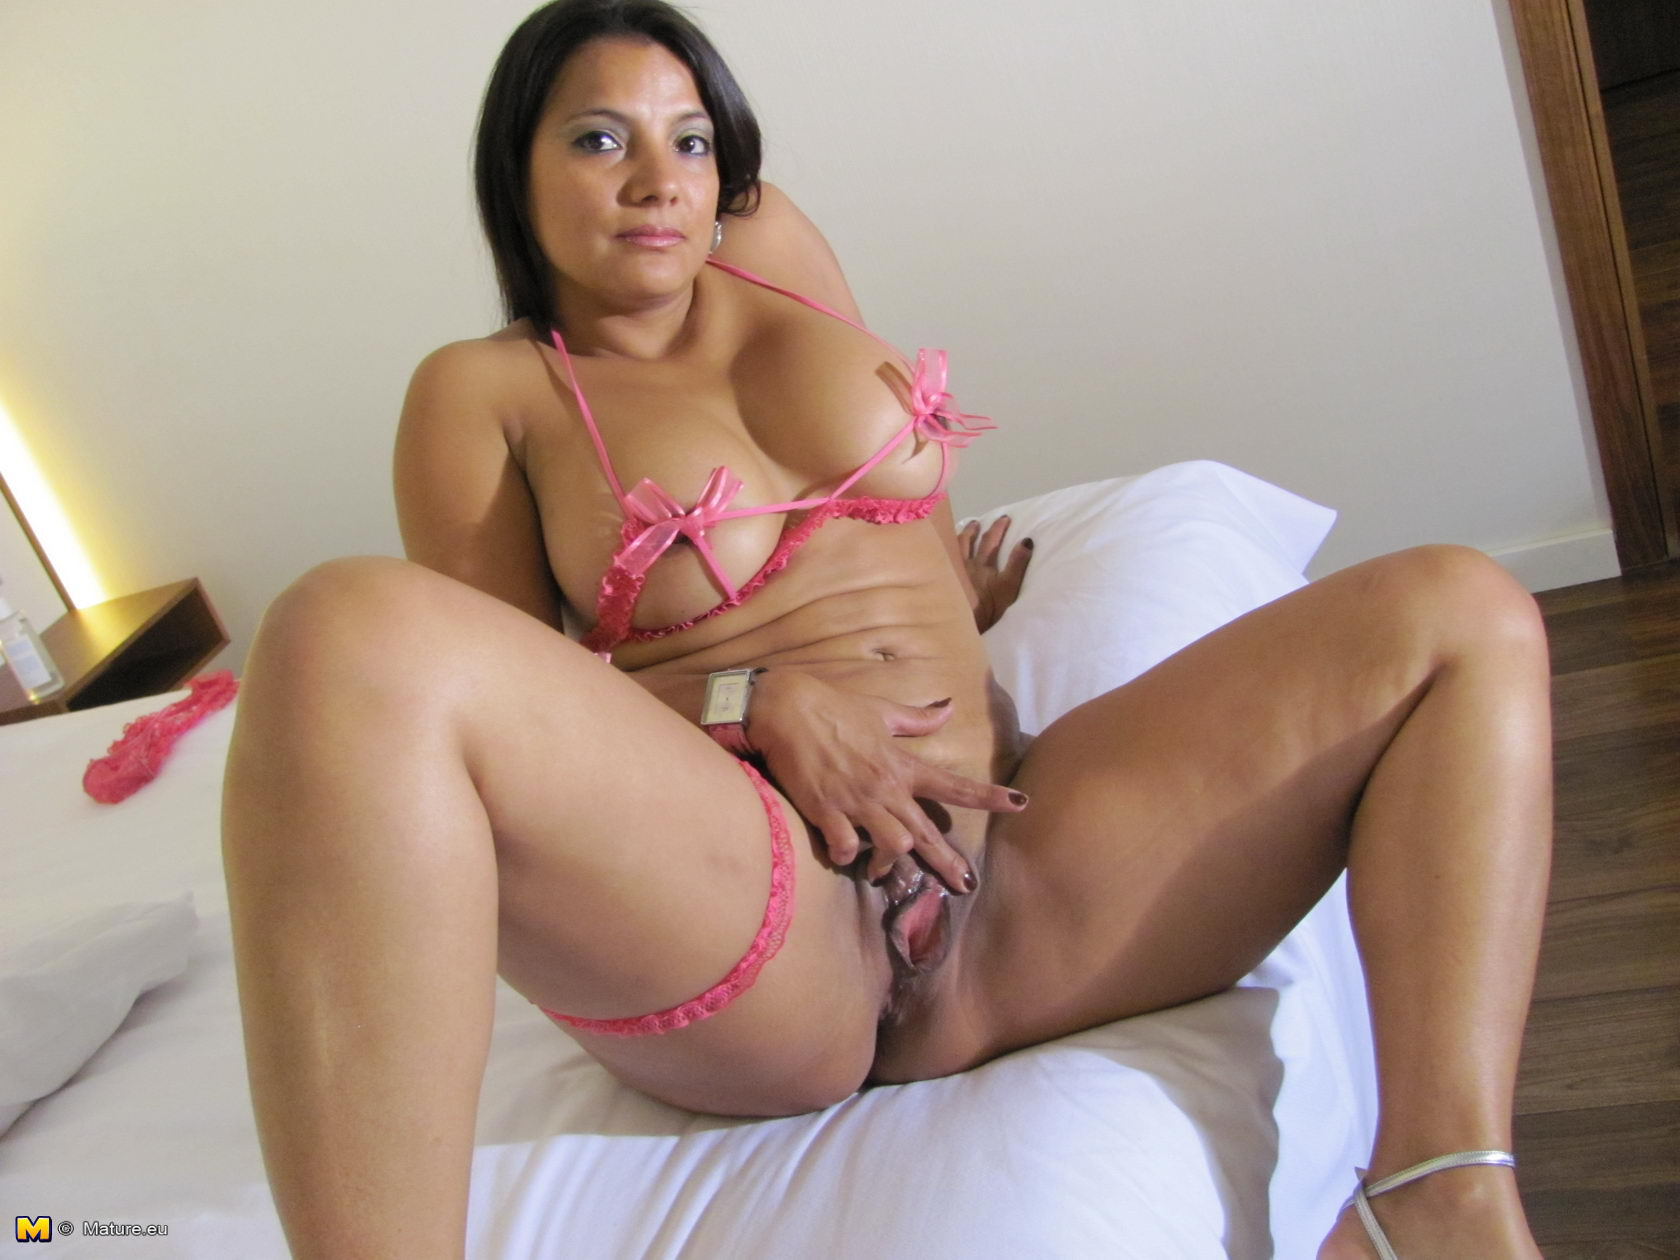 Spanish milf montse swinger takes a break from cleaning 4